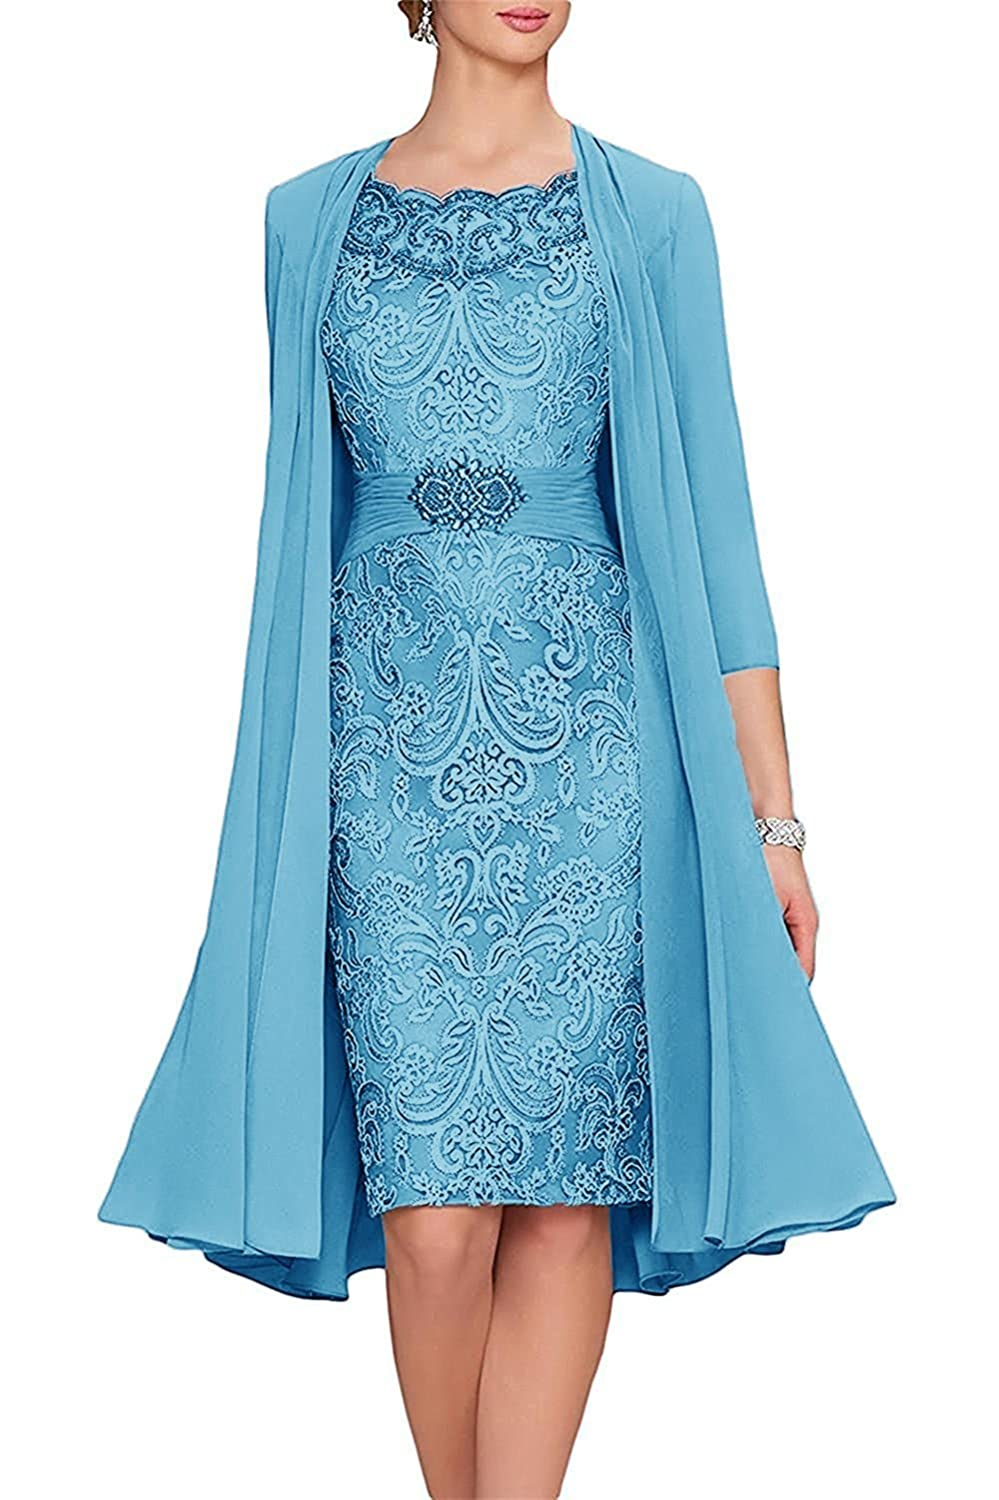 APXPF Women\'s Tea Length Mother of The Bride Dresses Two Pieces with ...